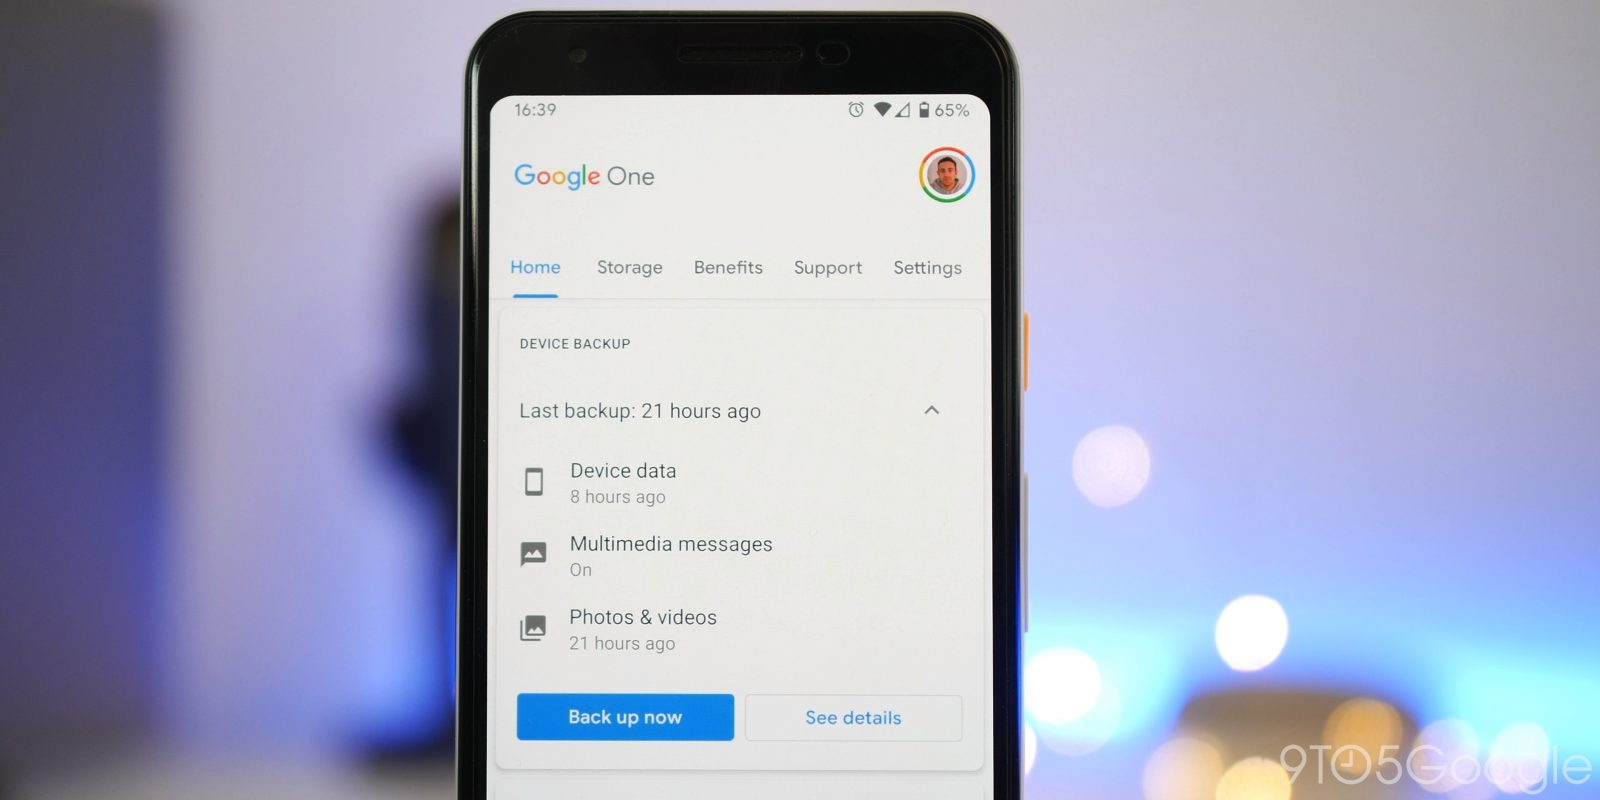 Backing Up Your Android Phone With Google